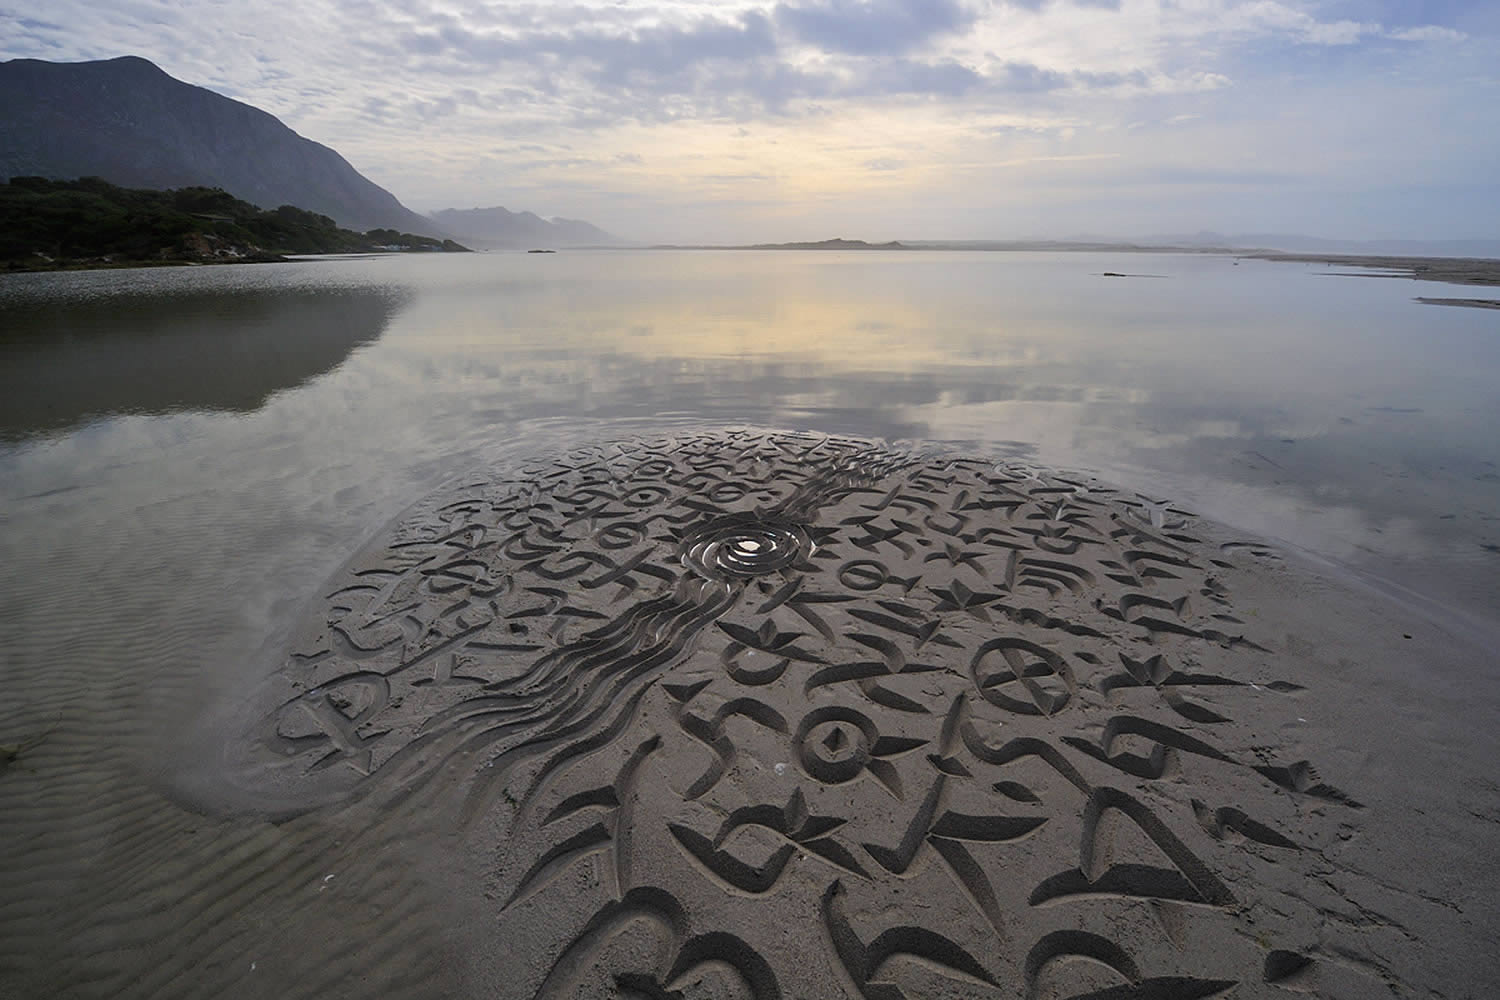 pattersn and calligraphy on the sand